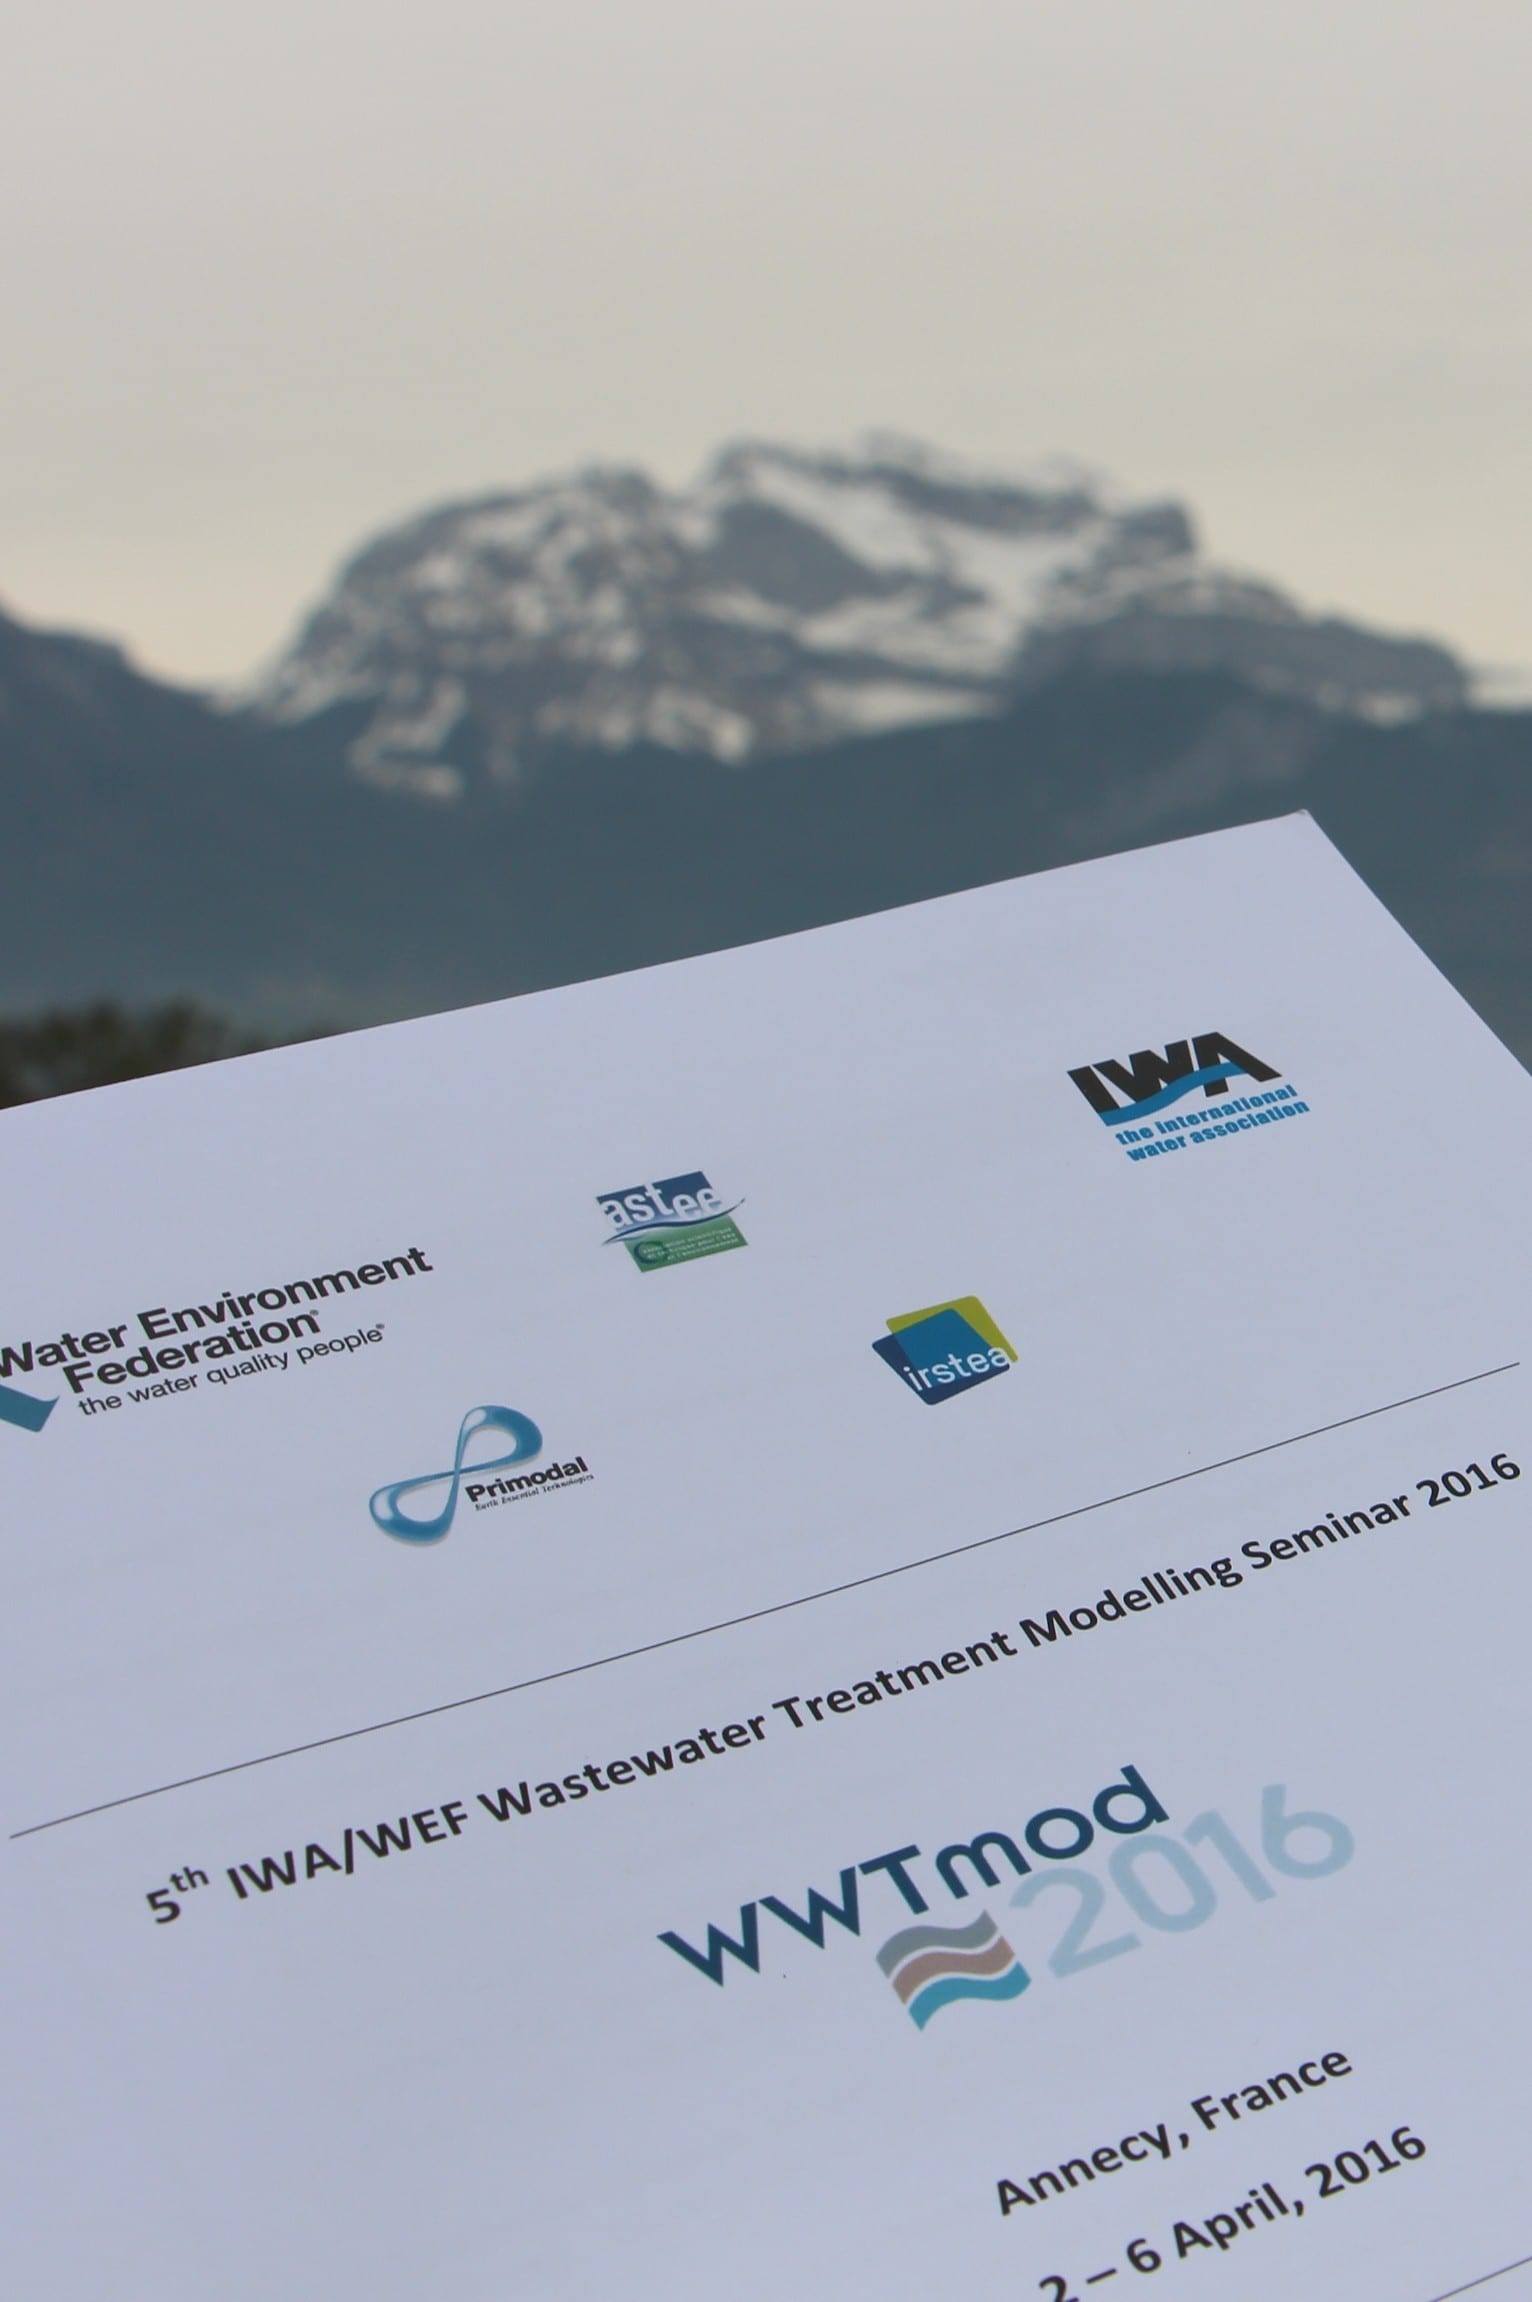 inCTRL Solutions at WWTmod2016 in Annecy, France